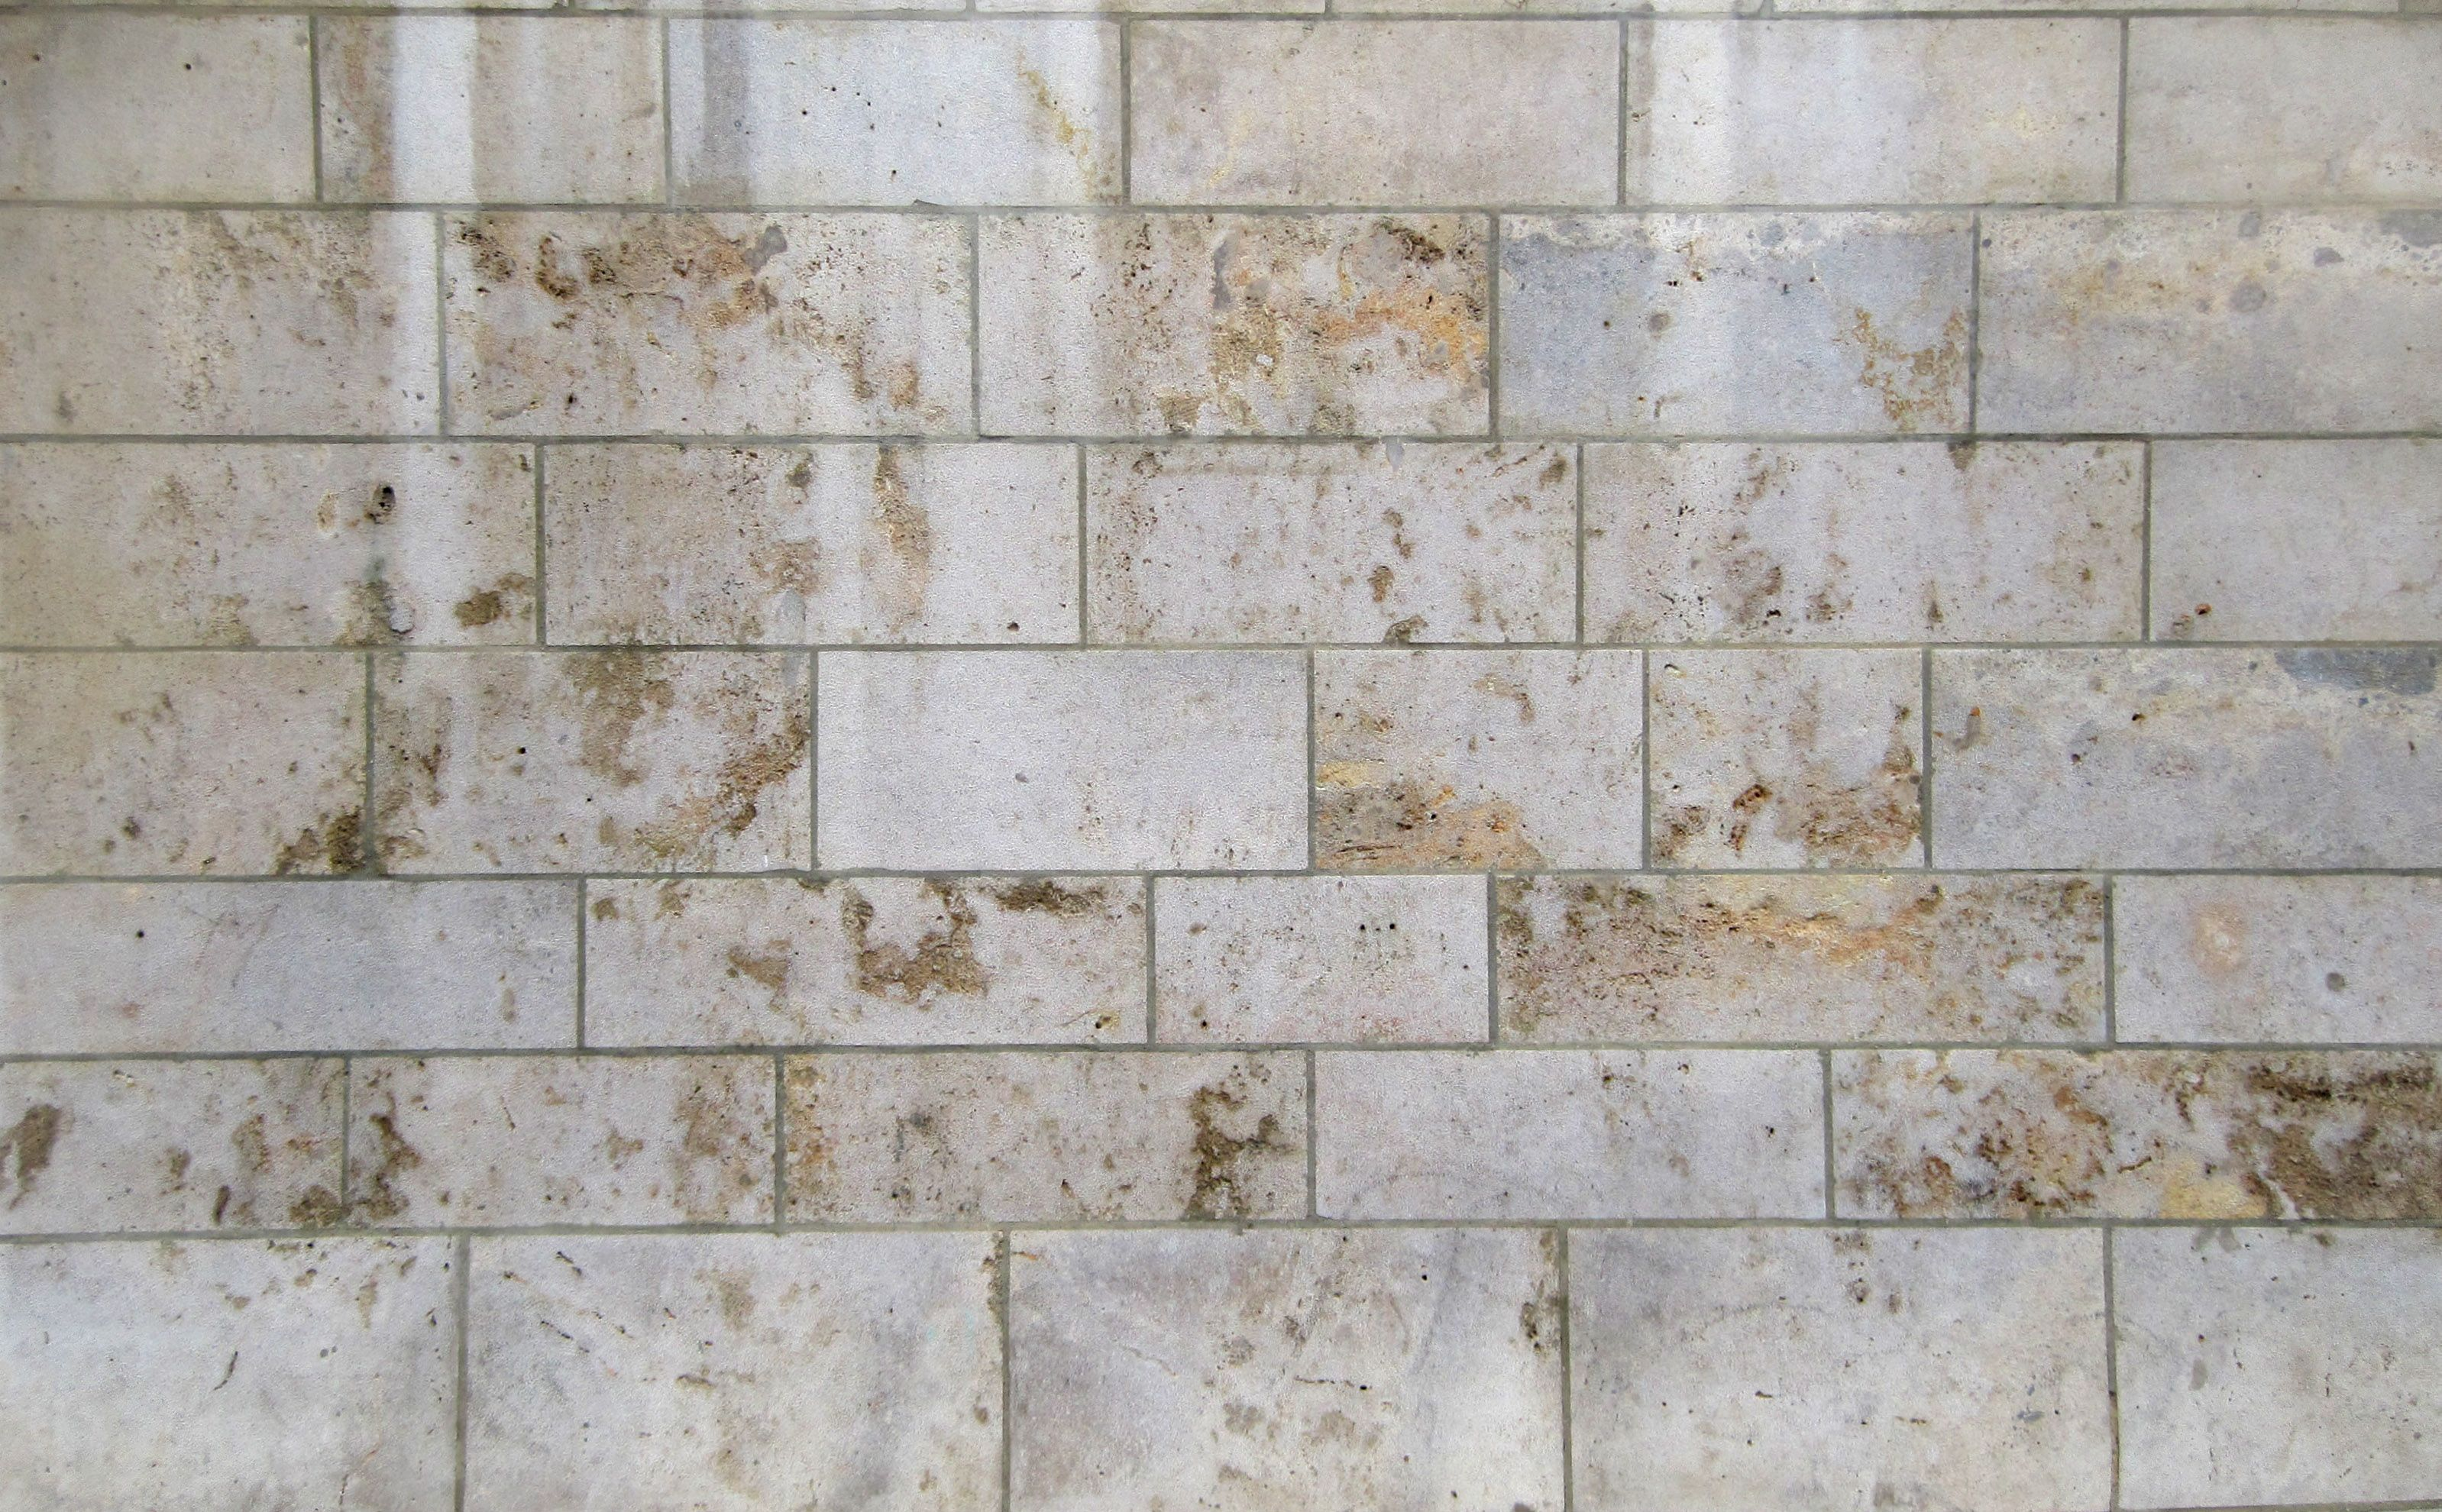 Stone Tile Floor Texture White Stone Wall Texture  Google Search  Illustration